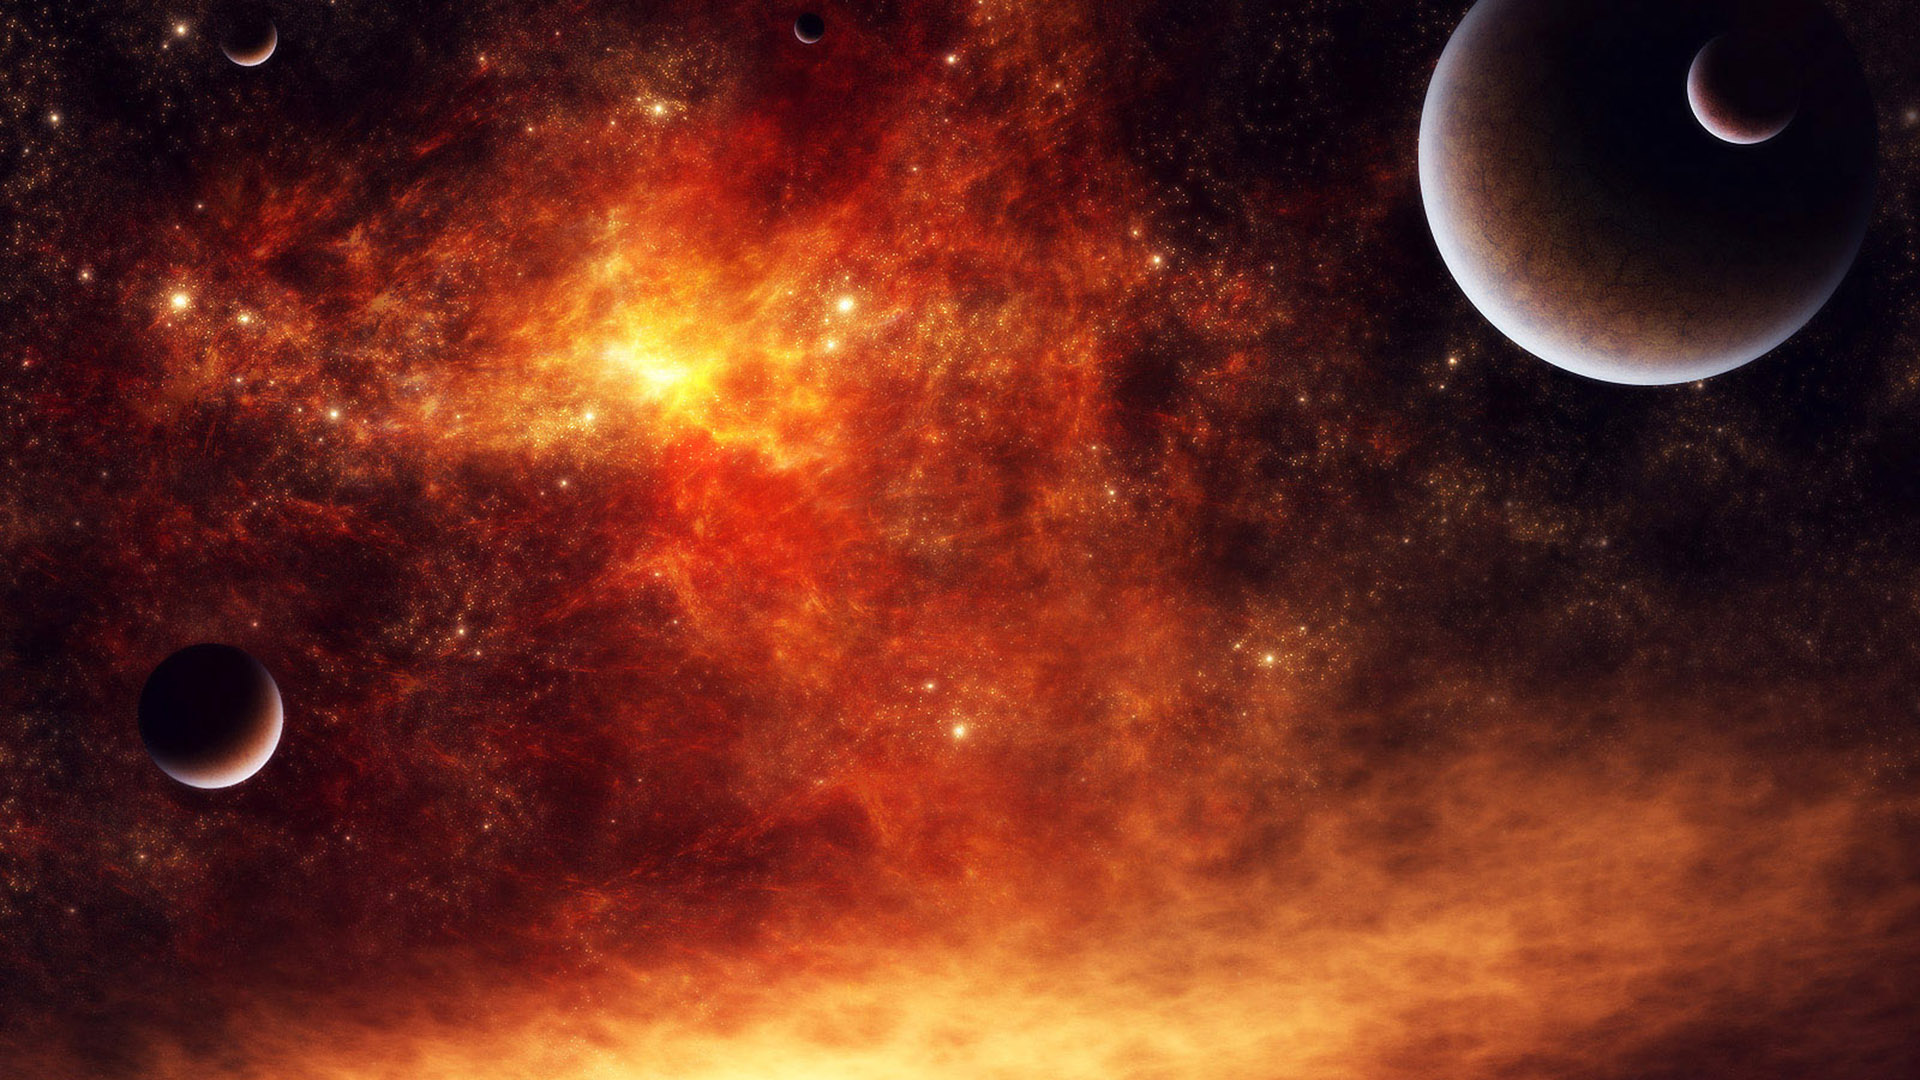 Fantastic Wallpaper Mobile Space - fantasy-space-art-005  Collection_631615.jpg